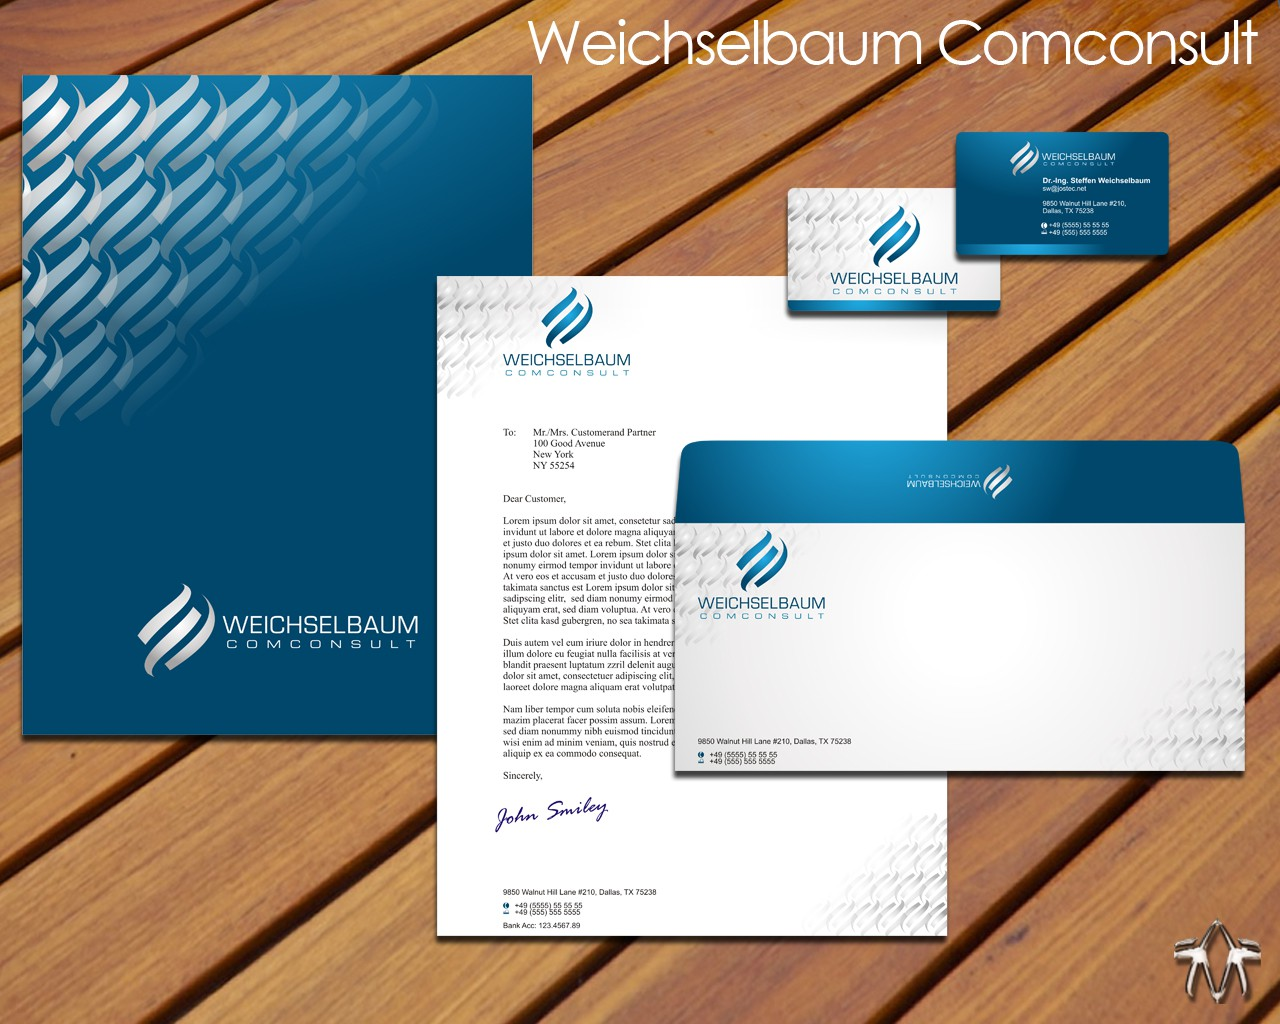 stationery for weichselbaum comconsult